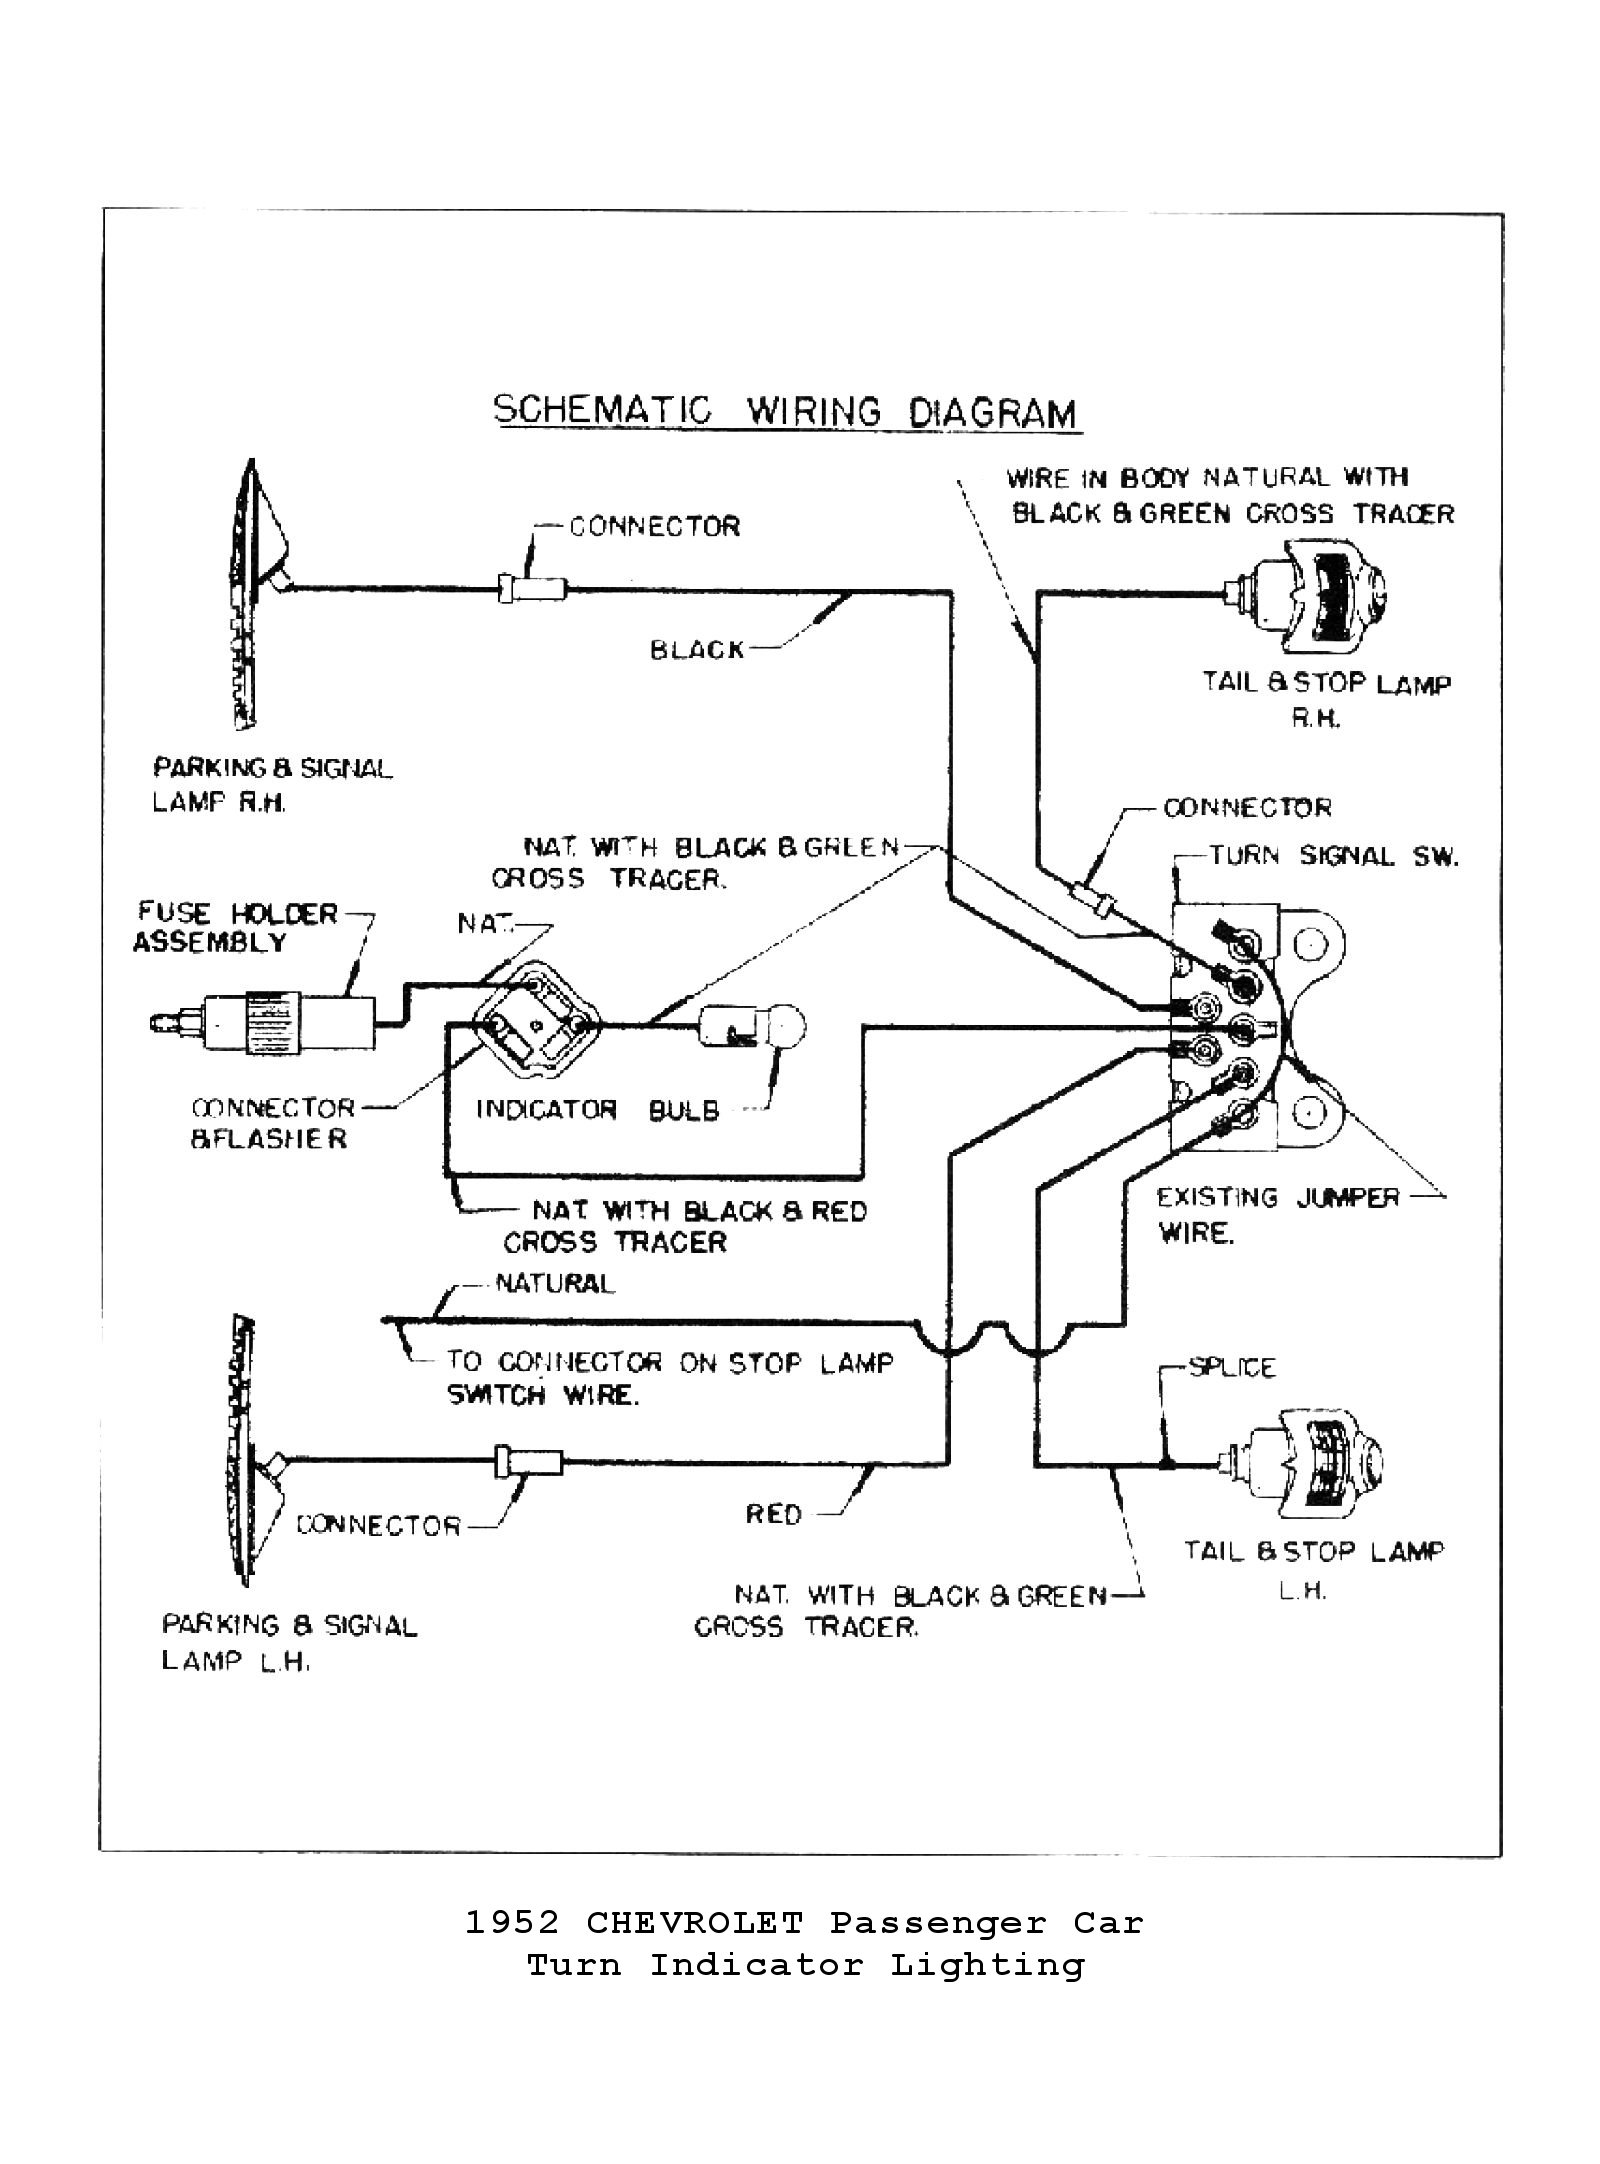 1953 chevy truck turn signal wiring diagram basic guide wiring rh desirehub co 1953 chevy truck wiring harness 1953 chevy truck wiring harness